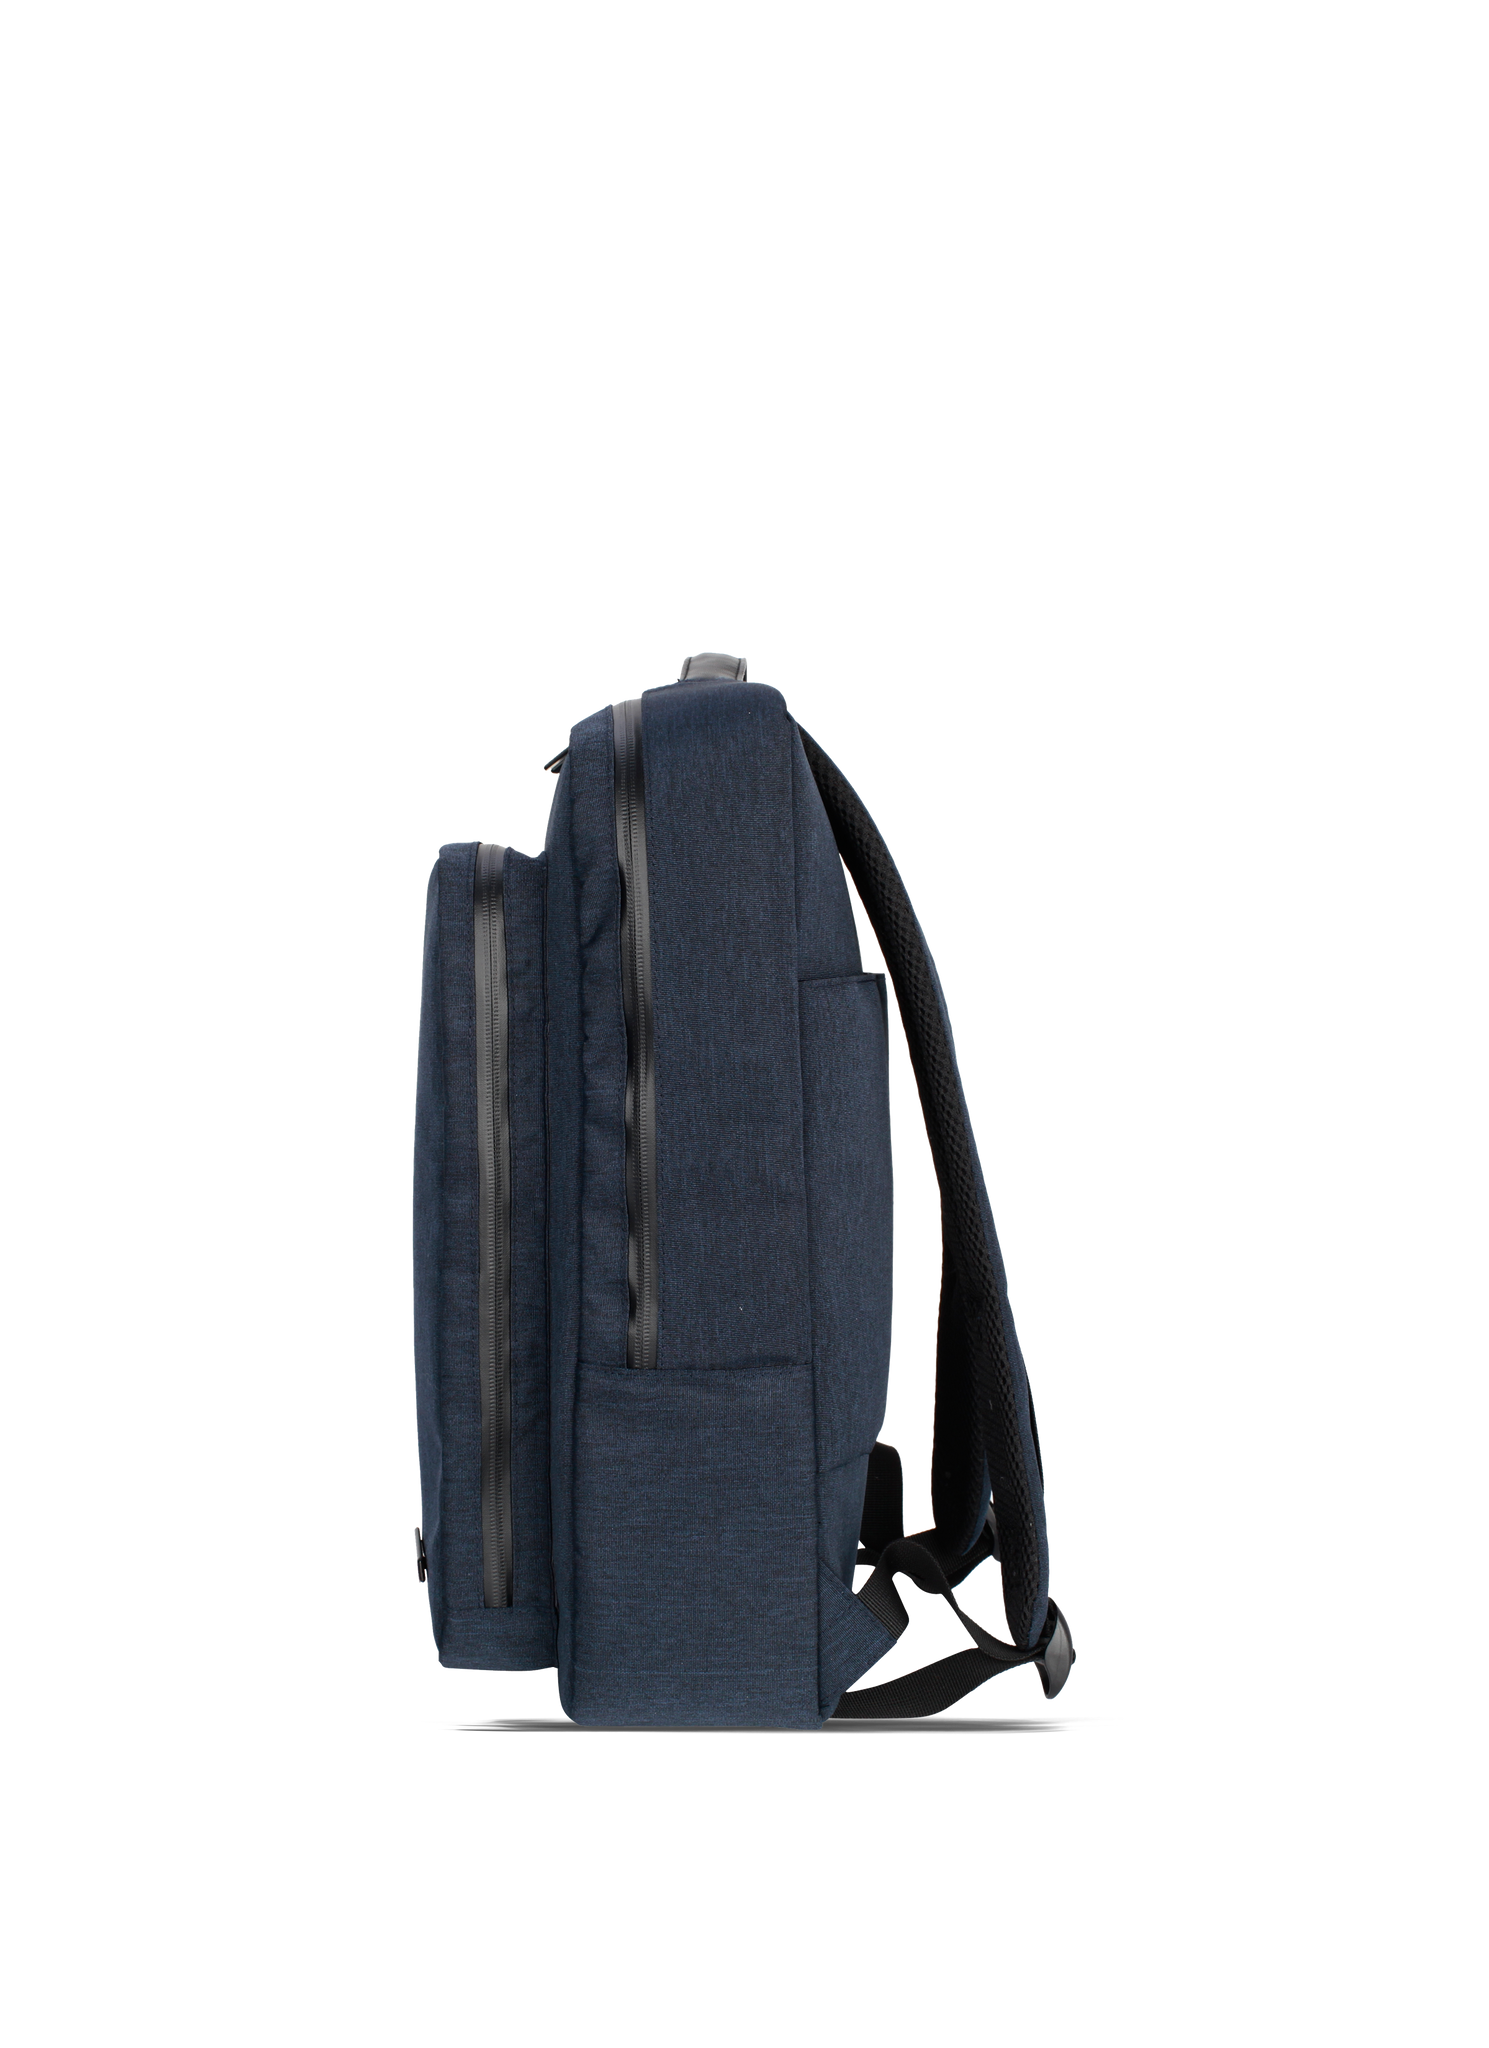 Revo ROMA Backpack